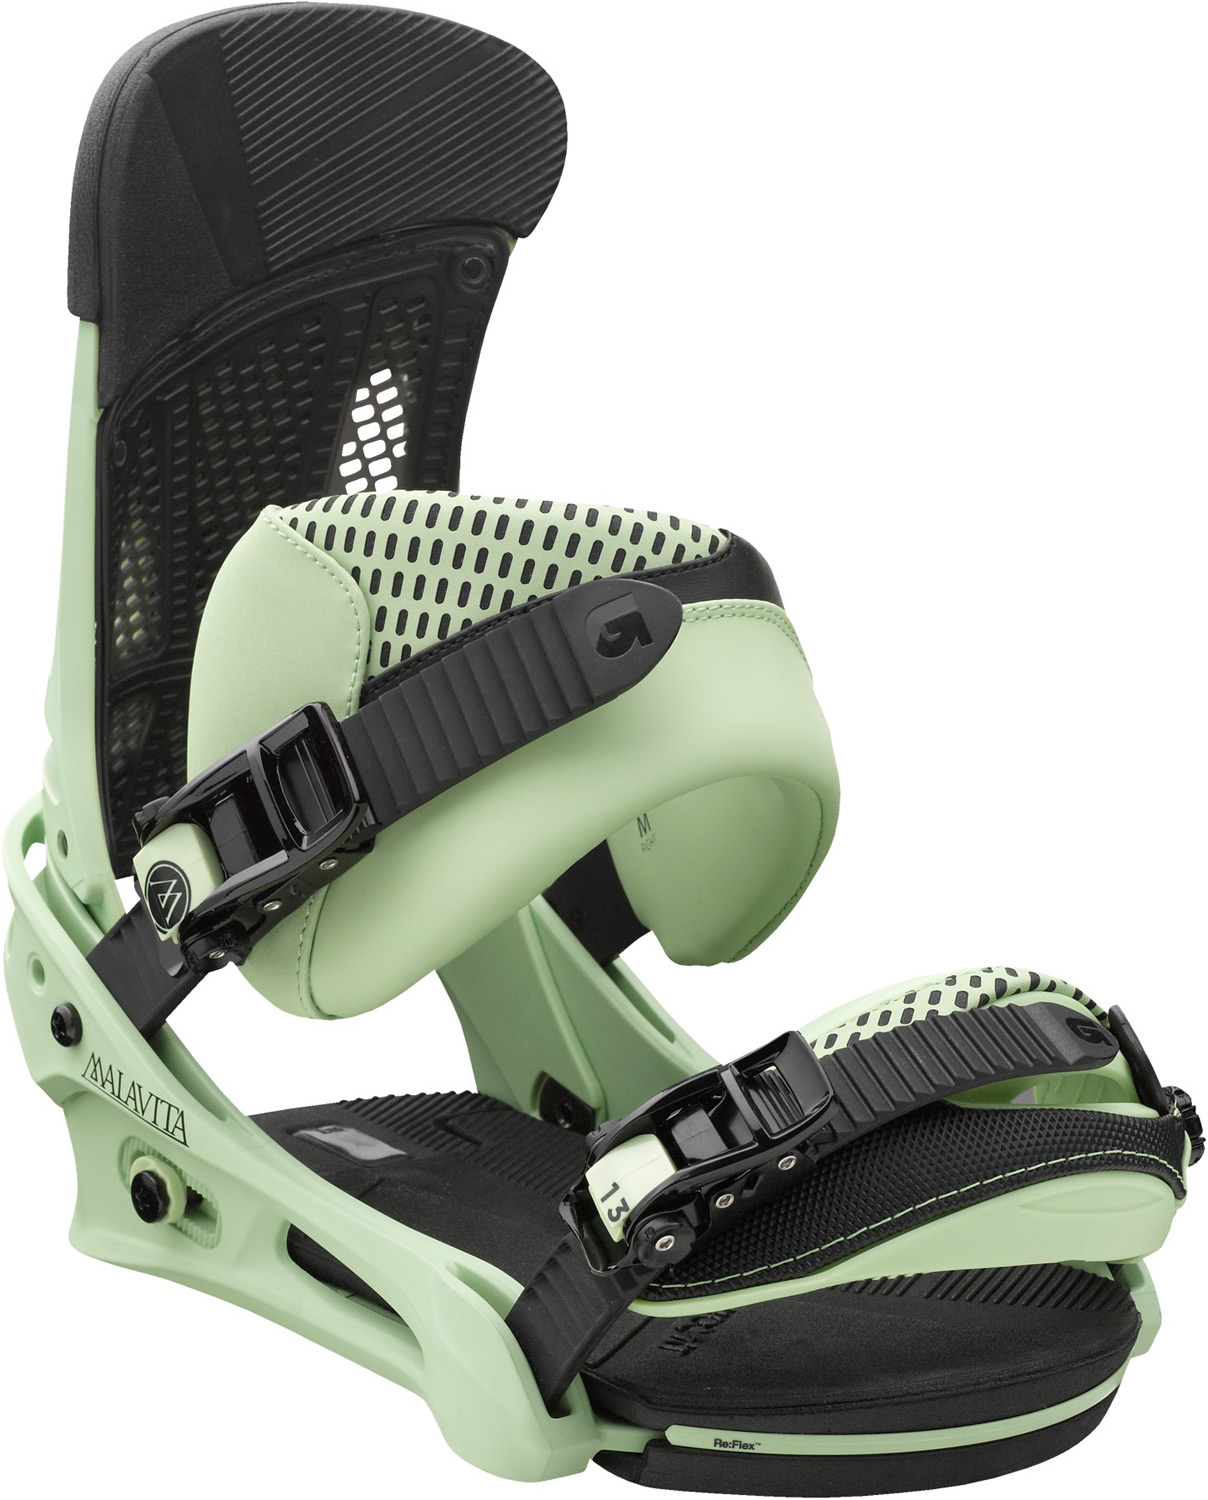 Snowboard Pillage, plunder, punish...you get the drift.Key Features of the Burton Malavita Snowboard Bindings: Response: 6 Baseplate: NEW Single-Component 30% Short-Glass/Nylon Composite Re:Flex Hi-Back: Canted living Hinge Zero-lean Hi-Back with DialFlAD and Heel Hammock Straps: NEW Asym React Strap and Gettagrip Capstrap Buckles: Dual-Component Smooth Glide Buckles Cushioning: NEW Re:Flex AutoCANT FullBED Cushioning System with B3 Gel Features Re-Ground Materials in Baseplate and Hi-Back to Reduce Waste - $181.95